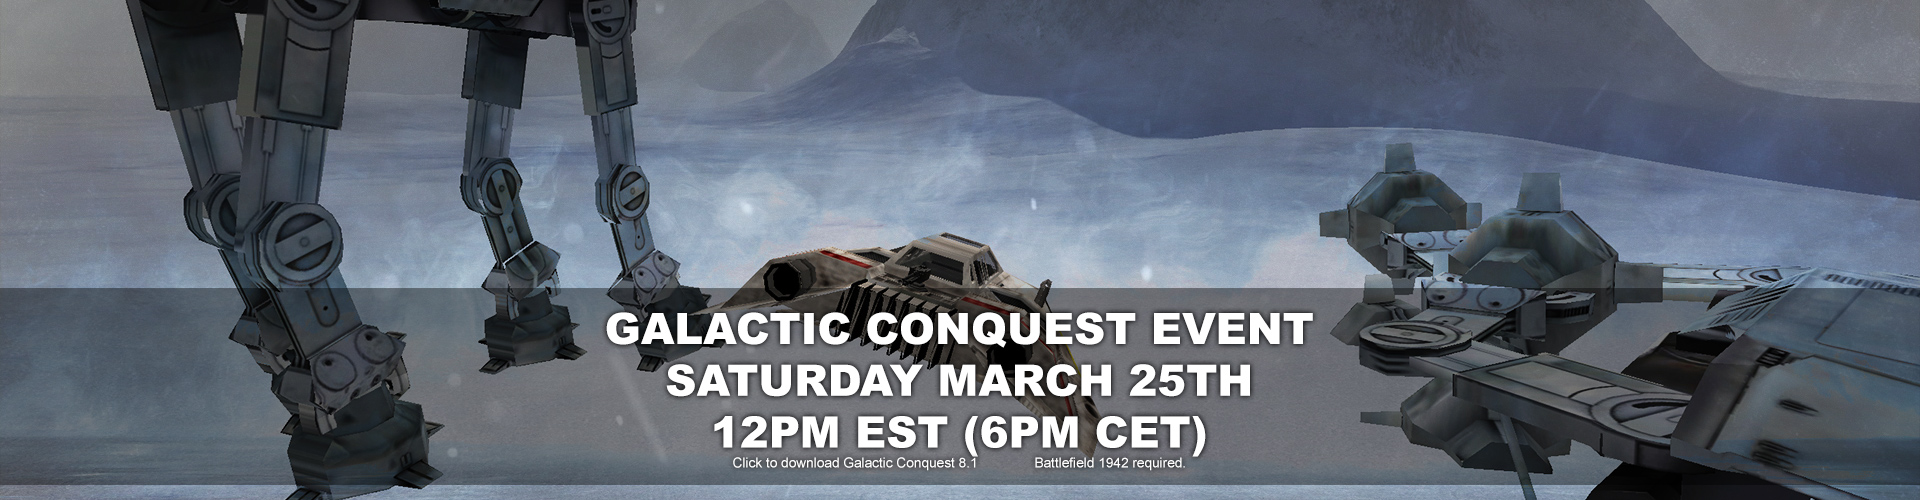 Galactic Conquest Event: Saturday 25.03.17 Banner-gc-event-25th-march2